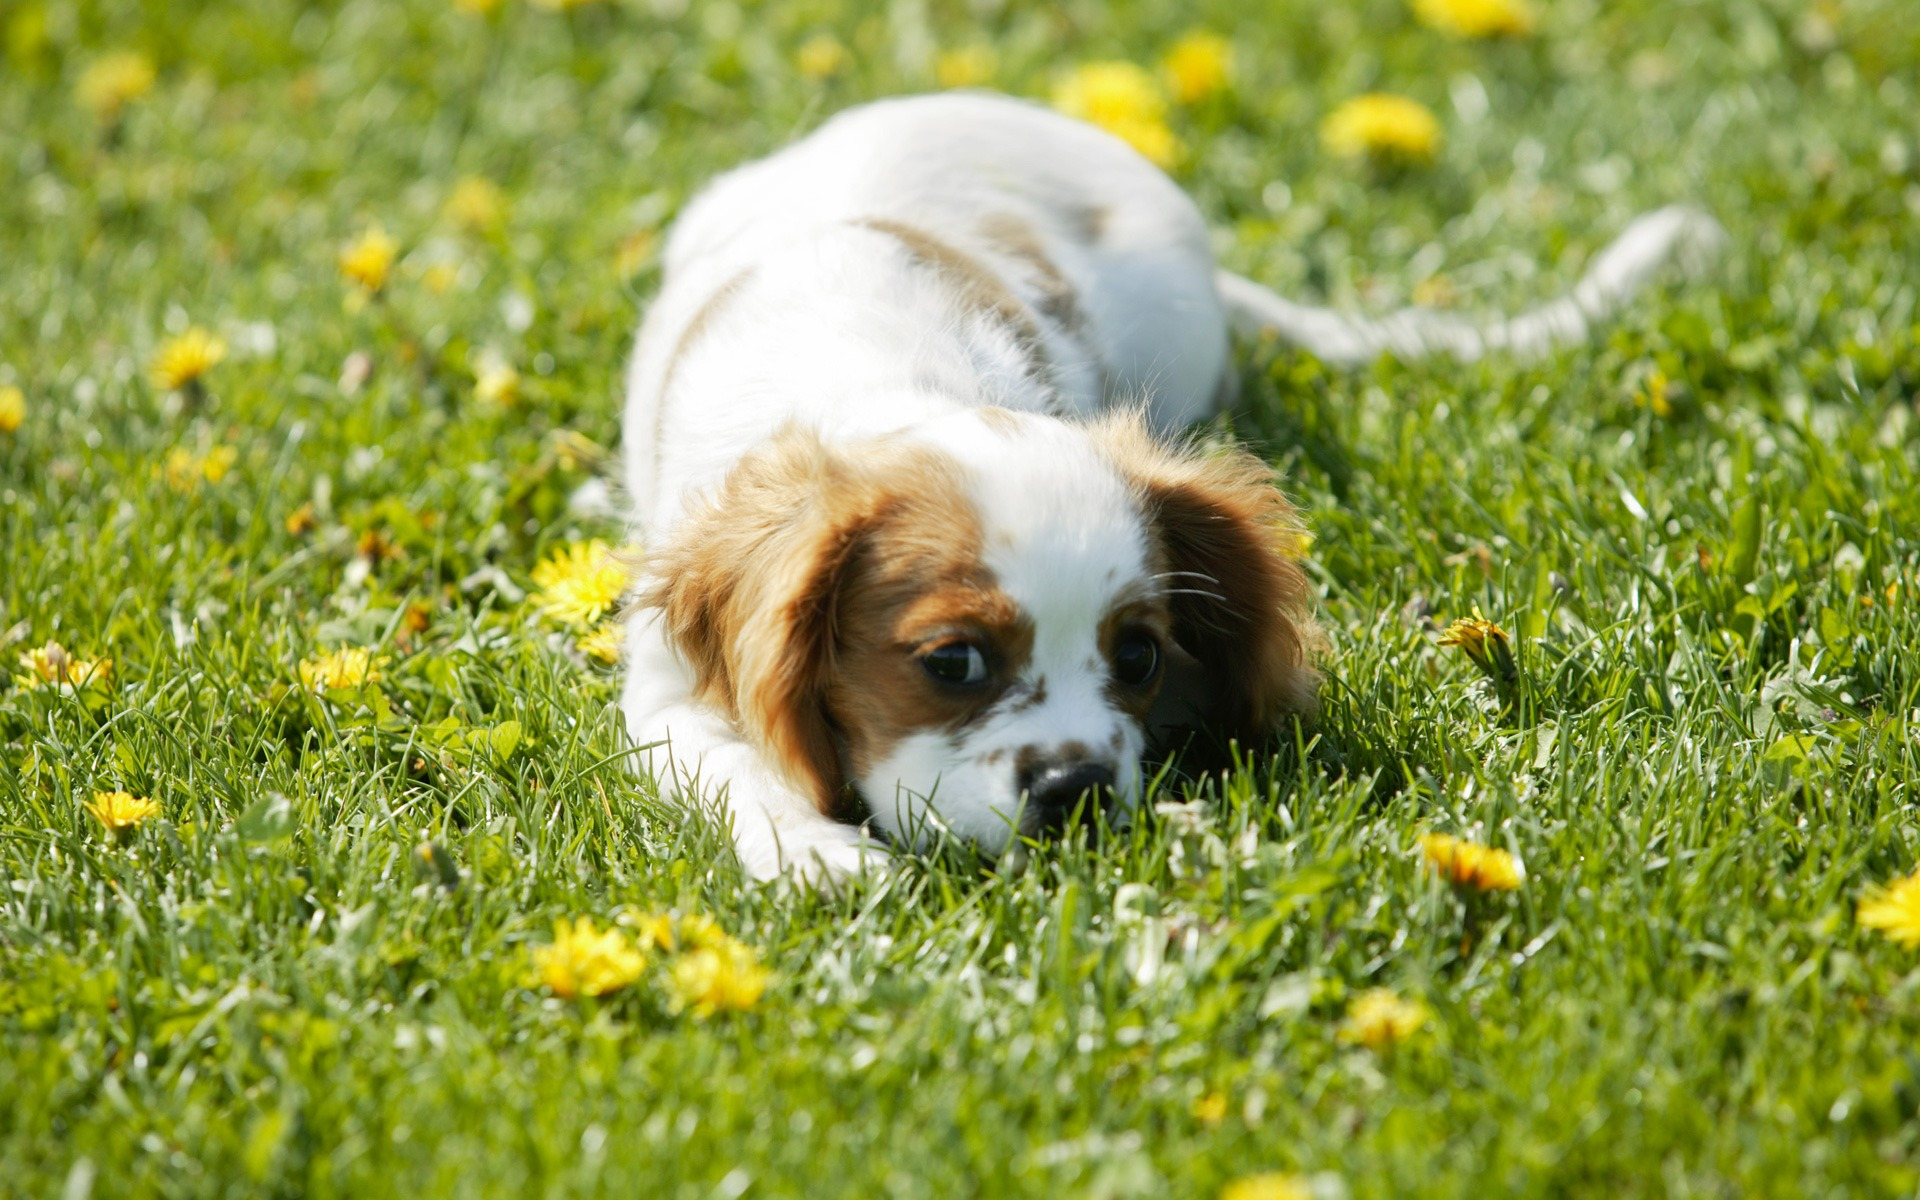 Puppy Wallpaper Dogs Animals Wallpapers In Jpg Format For Free Download